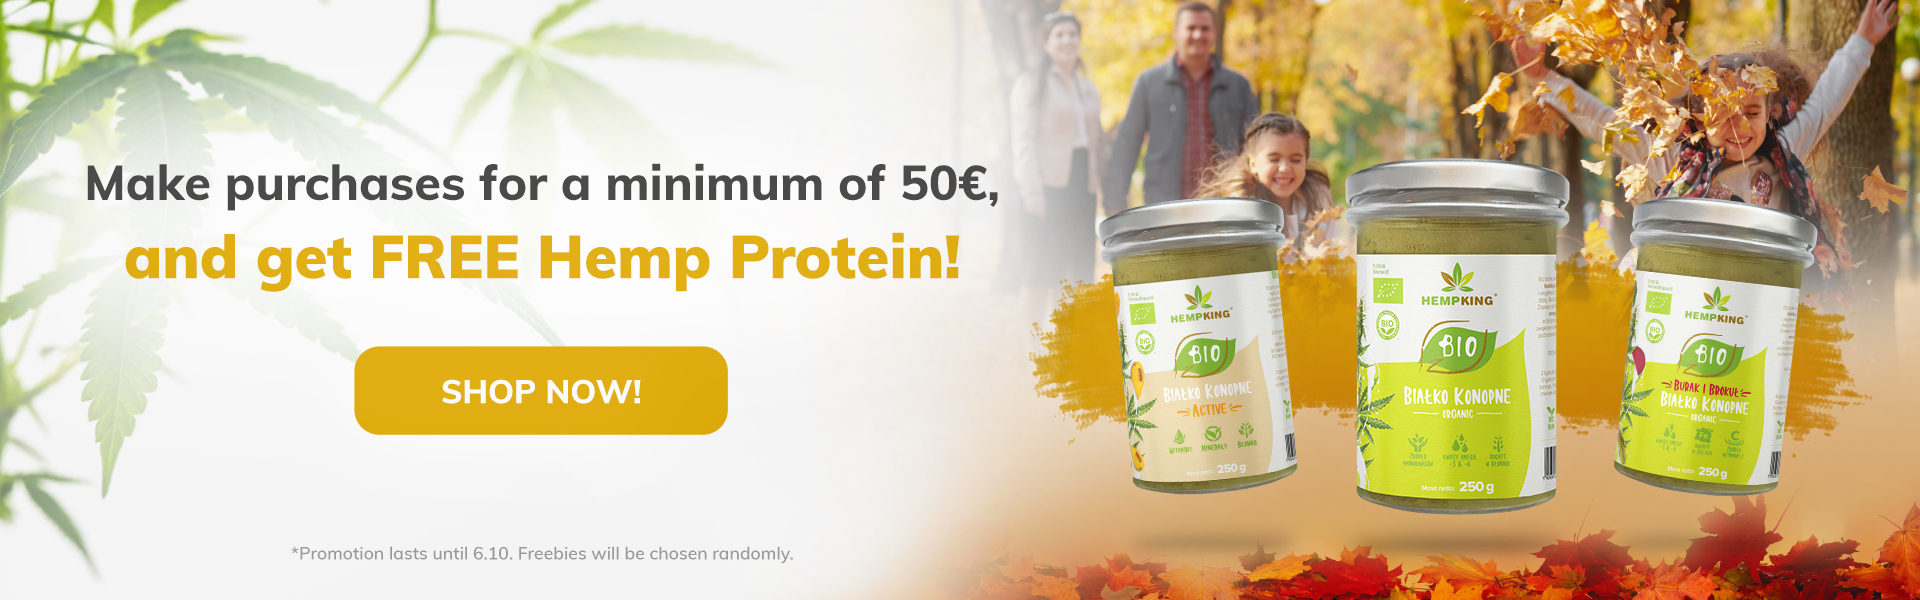 Hemp protein for free